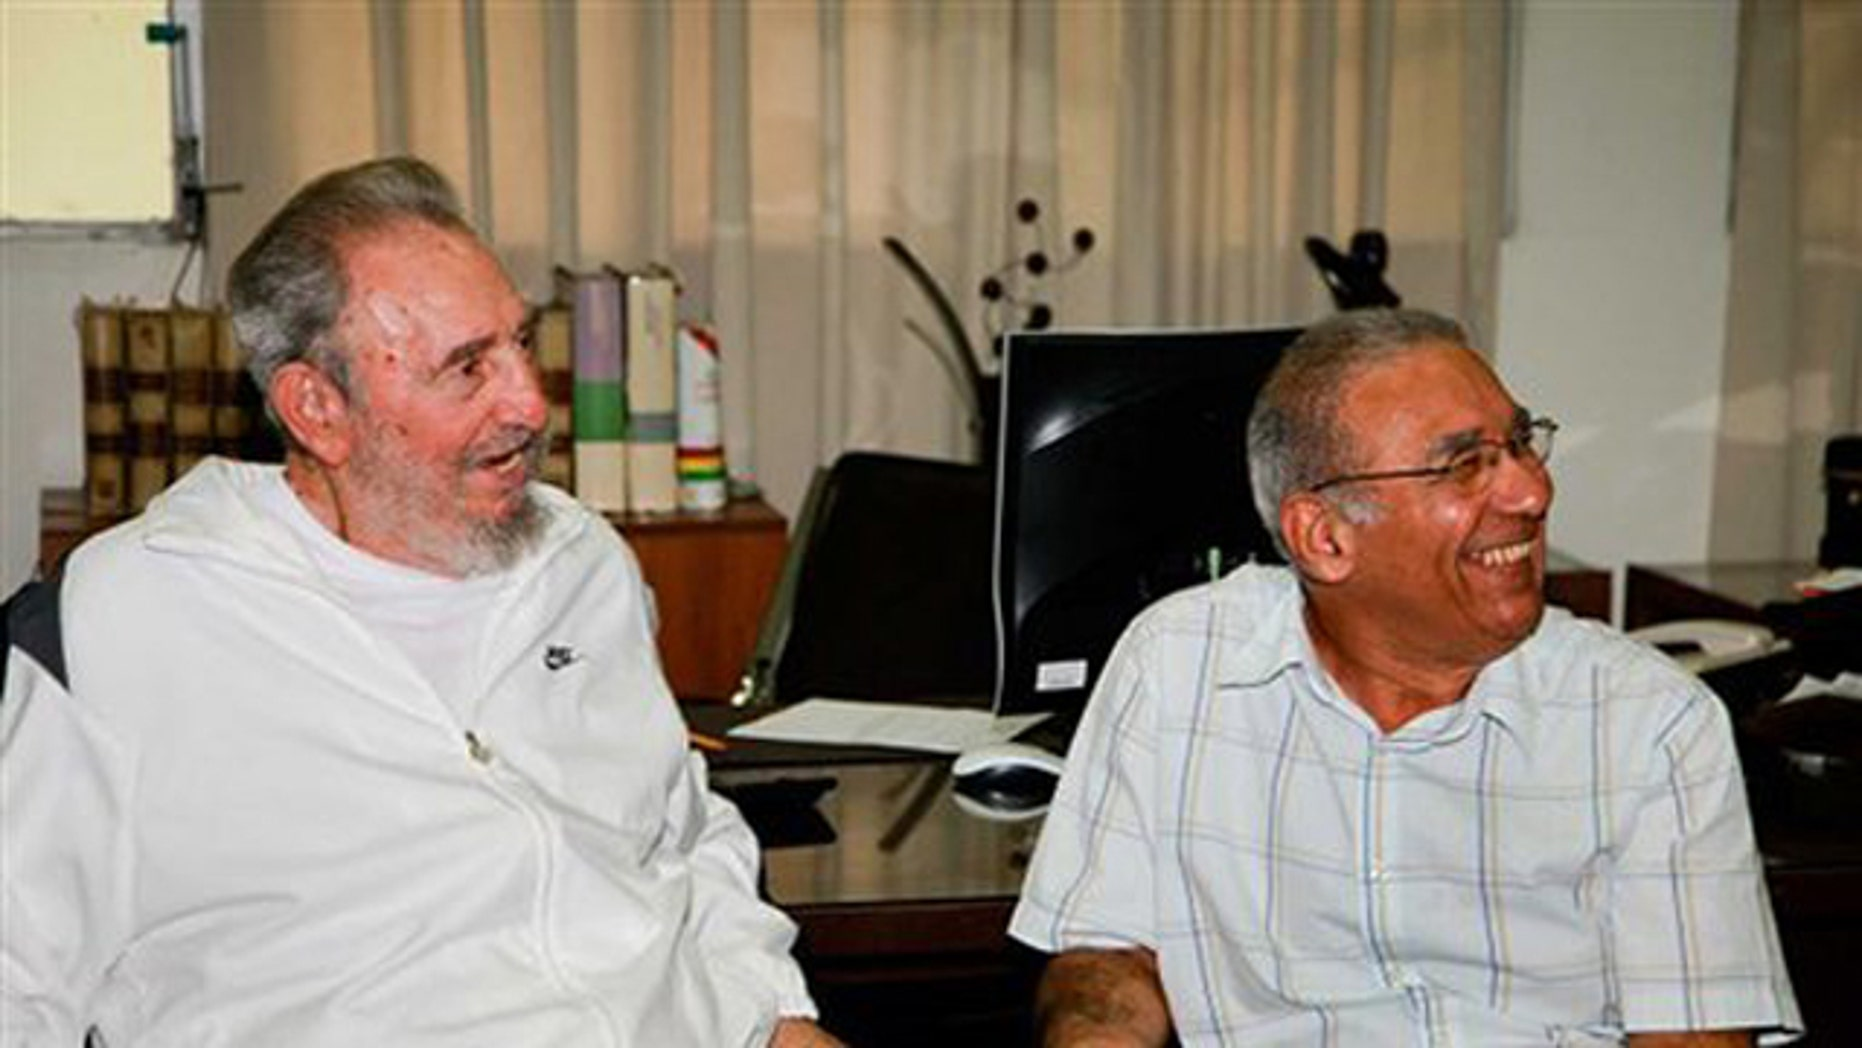 In this image released on Saturday July 10, 2010 by the state media Cubadebate website, Cuban leader Fidel Castro sits next to an unidentified man during a visit to the National Center for Scientific Investigation in Havana last July 7, 2010.